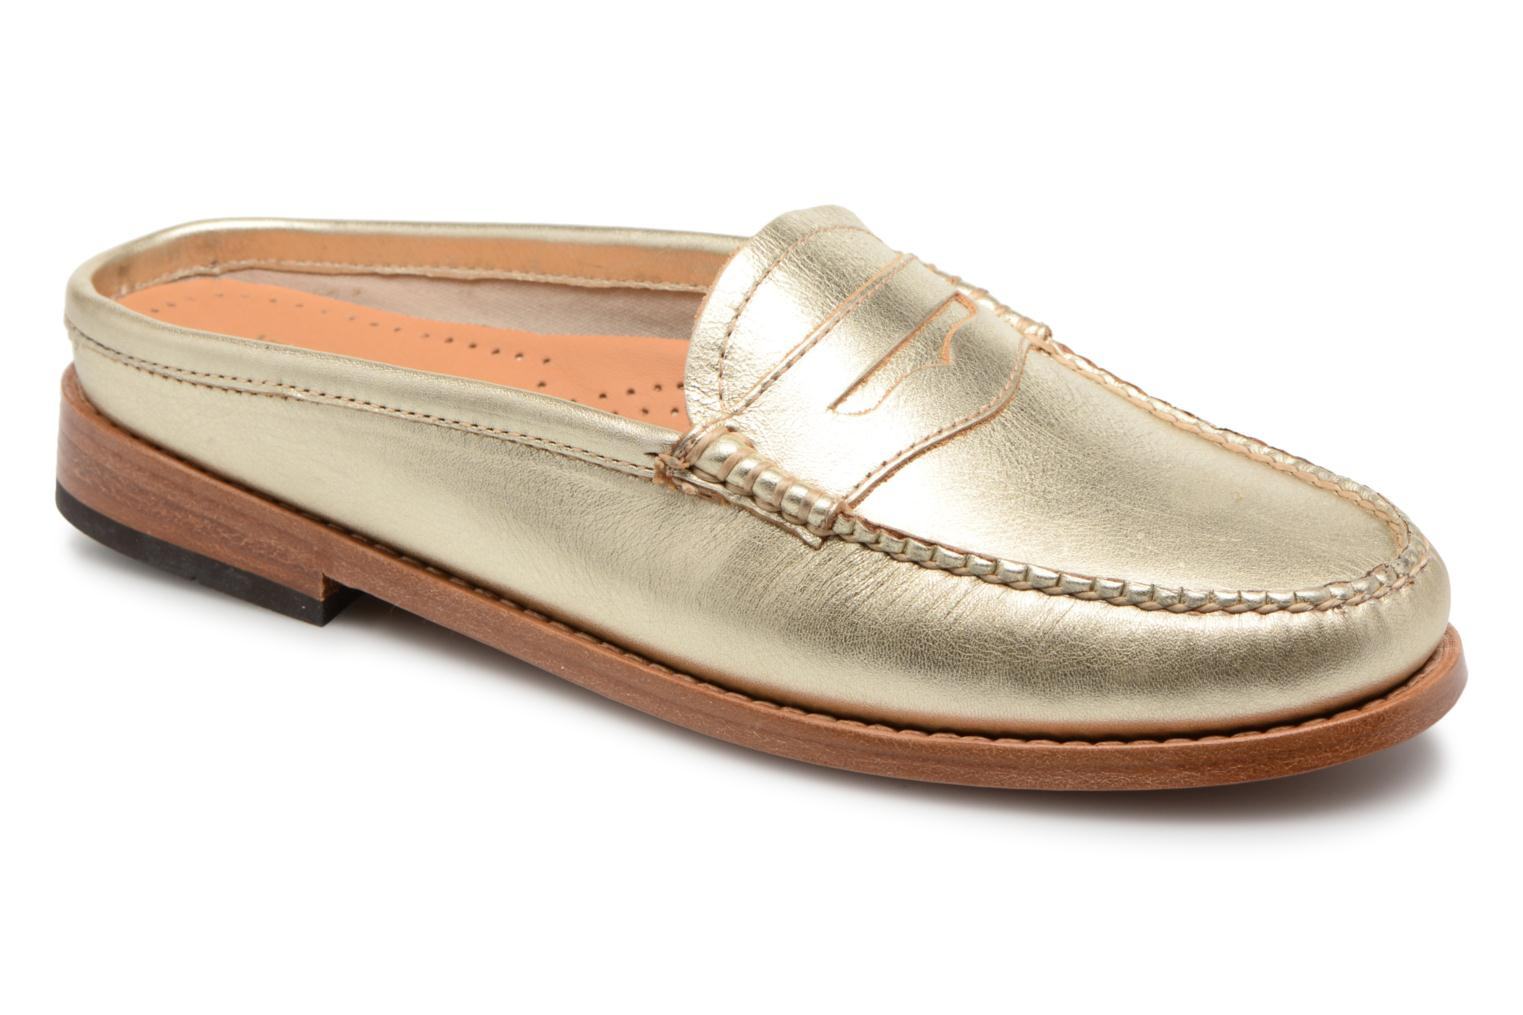 G.H. Bass - Damen - WEEJUN WMN Penny Wheel Print - Slipper - gold/bronze AQgPA0wpt